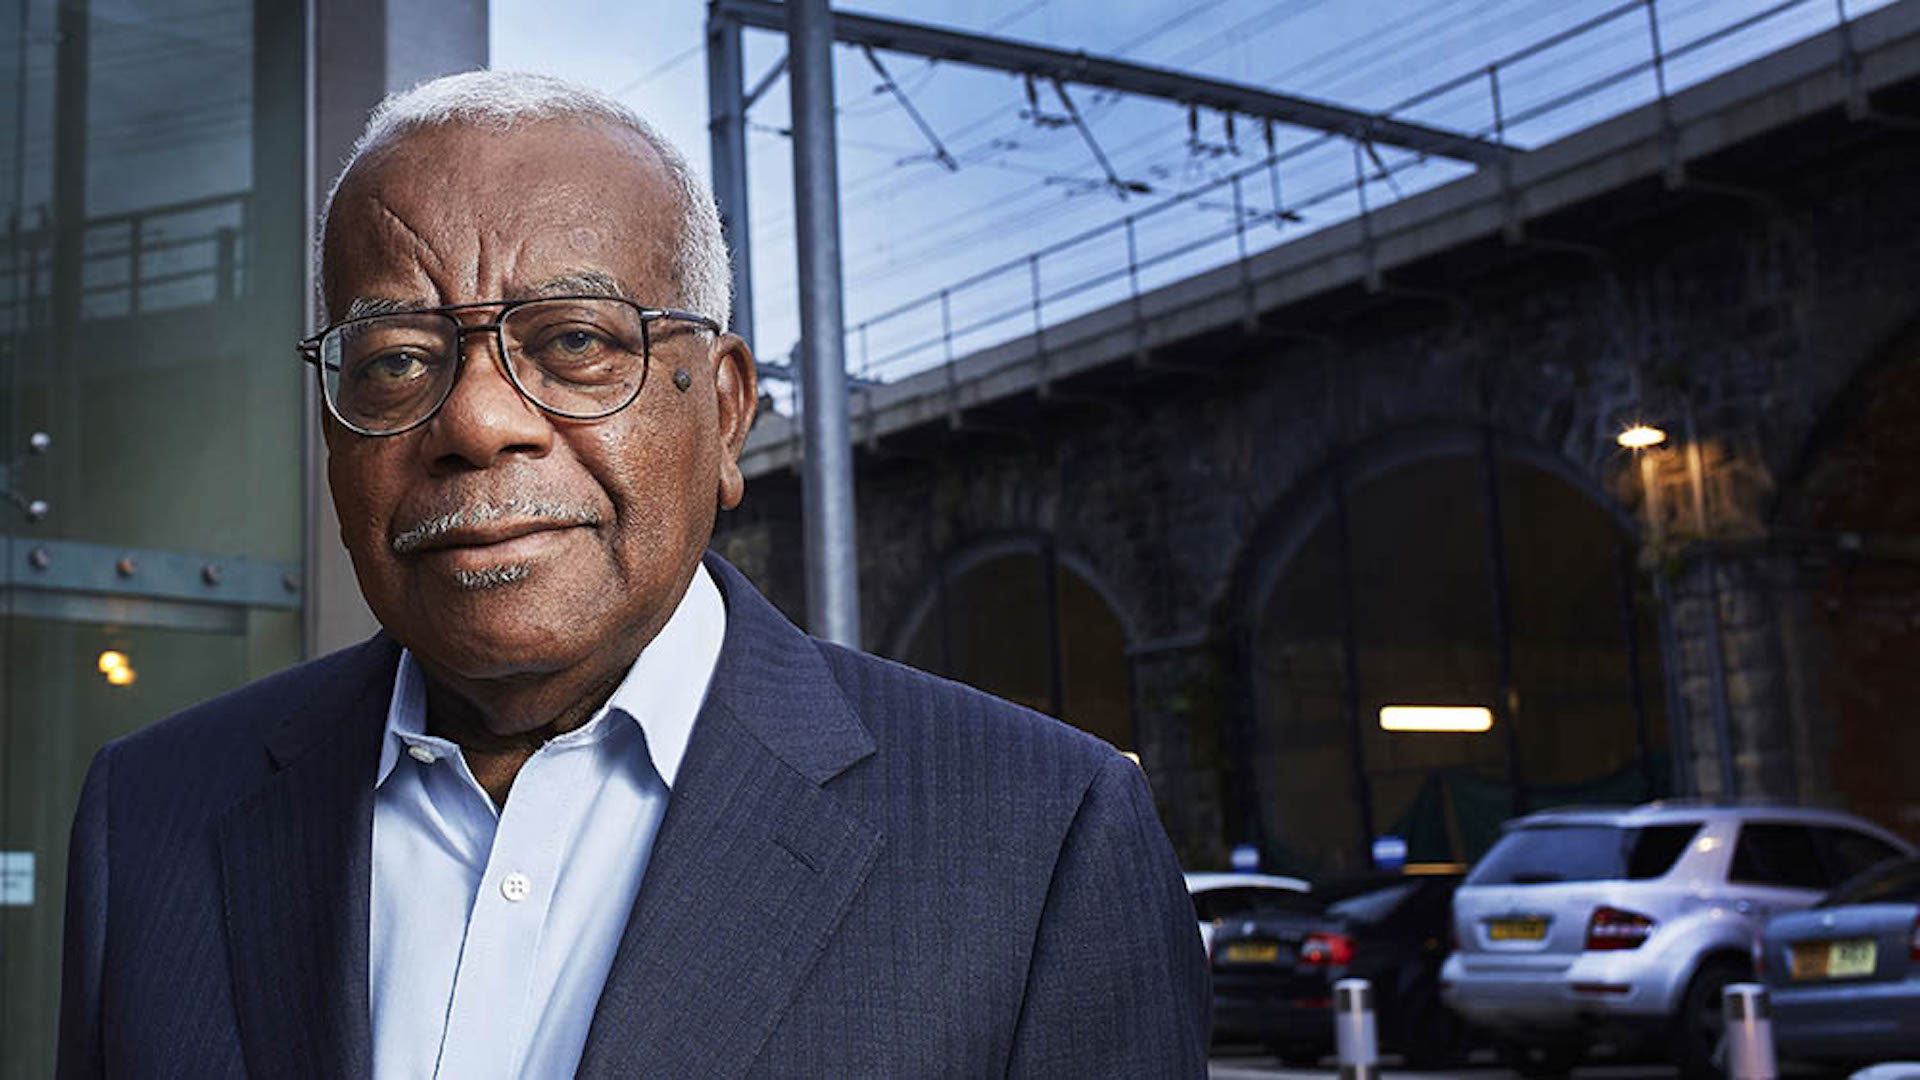 From Potato Productions   AN HOUR TO CATCH A KILLER Thursday 12th October 2017 on ITV   Pictured: Trevor McDonald   Sir Trevor McDonald introduces this groundbreaking film with unprecedented access to Northumbria Police Murder Detectives as they try to catch the killer of Alice Ruggles, a 24 year-old woman from Gateshead.   From the moment the body is discovered by her flatmate, viewers will see first-hand exactly how the investigation unfolds throughout 'The Golden Hour', the initial period of the investigation when every decision made by the senior investigating officer can be the difference between whether or not the murderer is caught and convicted.  Photographer: Justin Slee   © ITV   For further information please contact Peter Gray 0207 157 3046 peter.gray@itv.com    This photograph is © ITV and can only be reproduced for editorial purposes directly in connection with the  programme AN HOUR TO CATCH A KILLER or ITV. Once made available by the ITV Picture Desk, this photograph can be reproduced once only up until the Transmission date and no reproduction fee will be charged. Any subsequent usage may incur a fee. This photograph must not be syndicated to any other publication or website, or permanently archived, without the express written permission of ITV Picture Desk. Full Terms and conditions are available on the website www.itvpictures.com